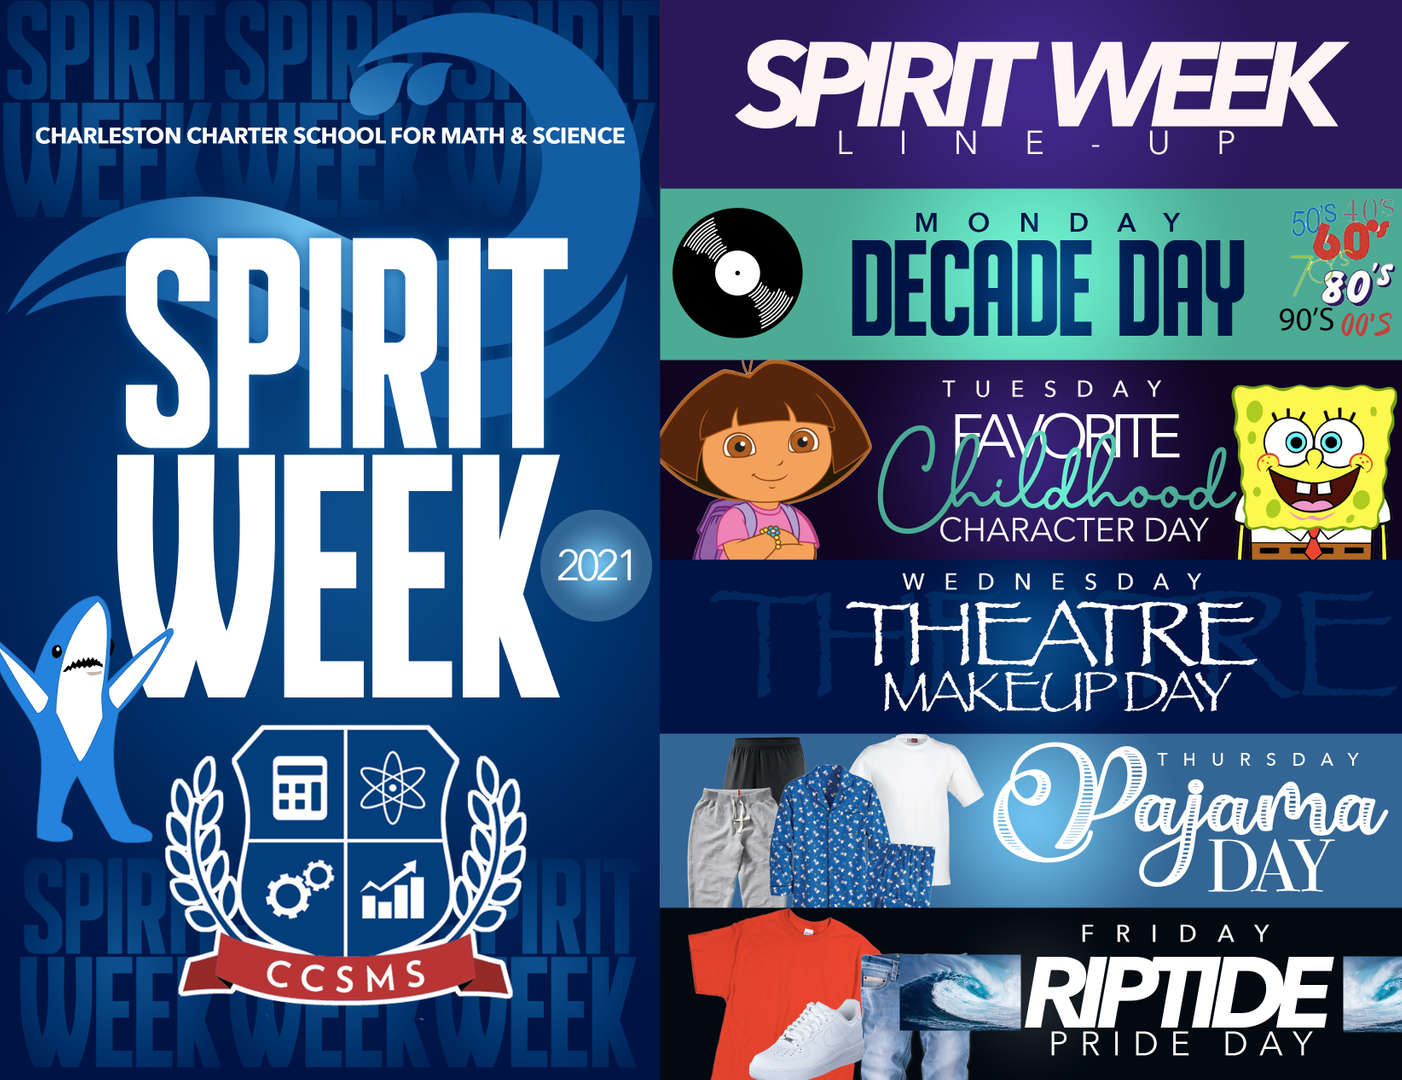 Monday: Decade Days (50s, 60s, 70s, 80s, 90s, 00's) etc...  Tuesday: Favorite Childhood Character Day  Wednesday: Theatre Makeup Day  Thursday: Pajama Day  Friday: Riptide Pride Day